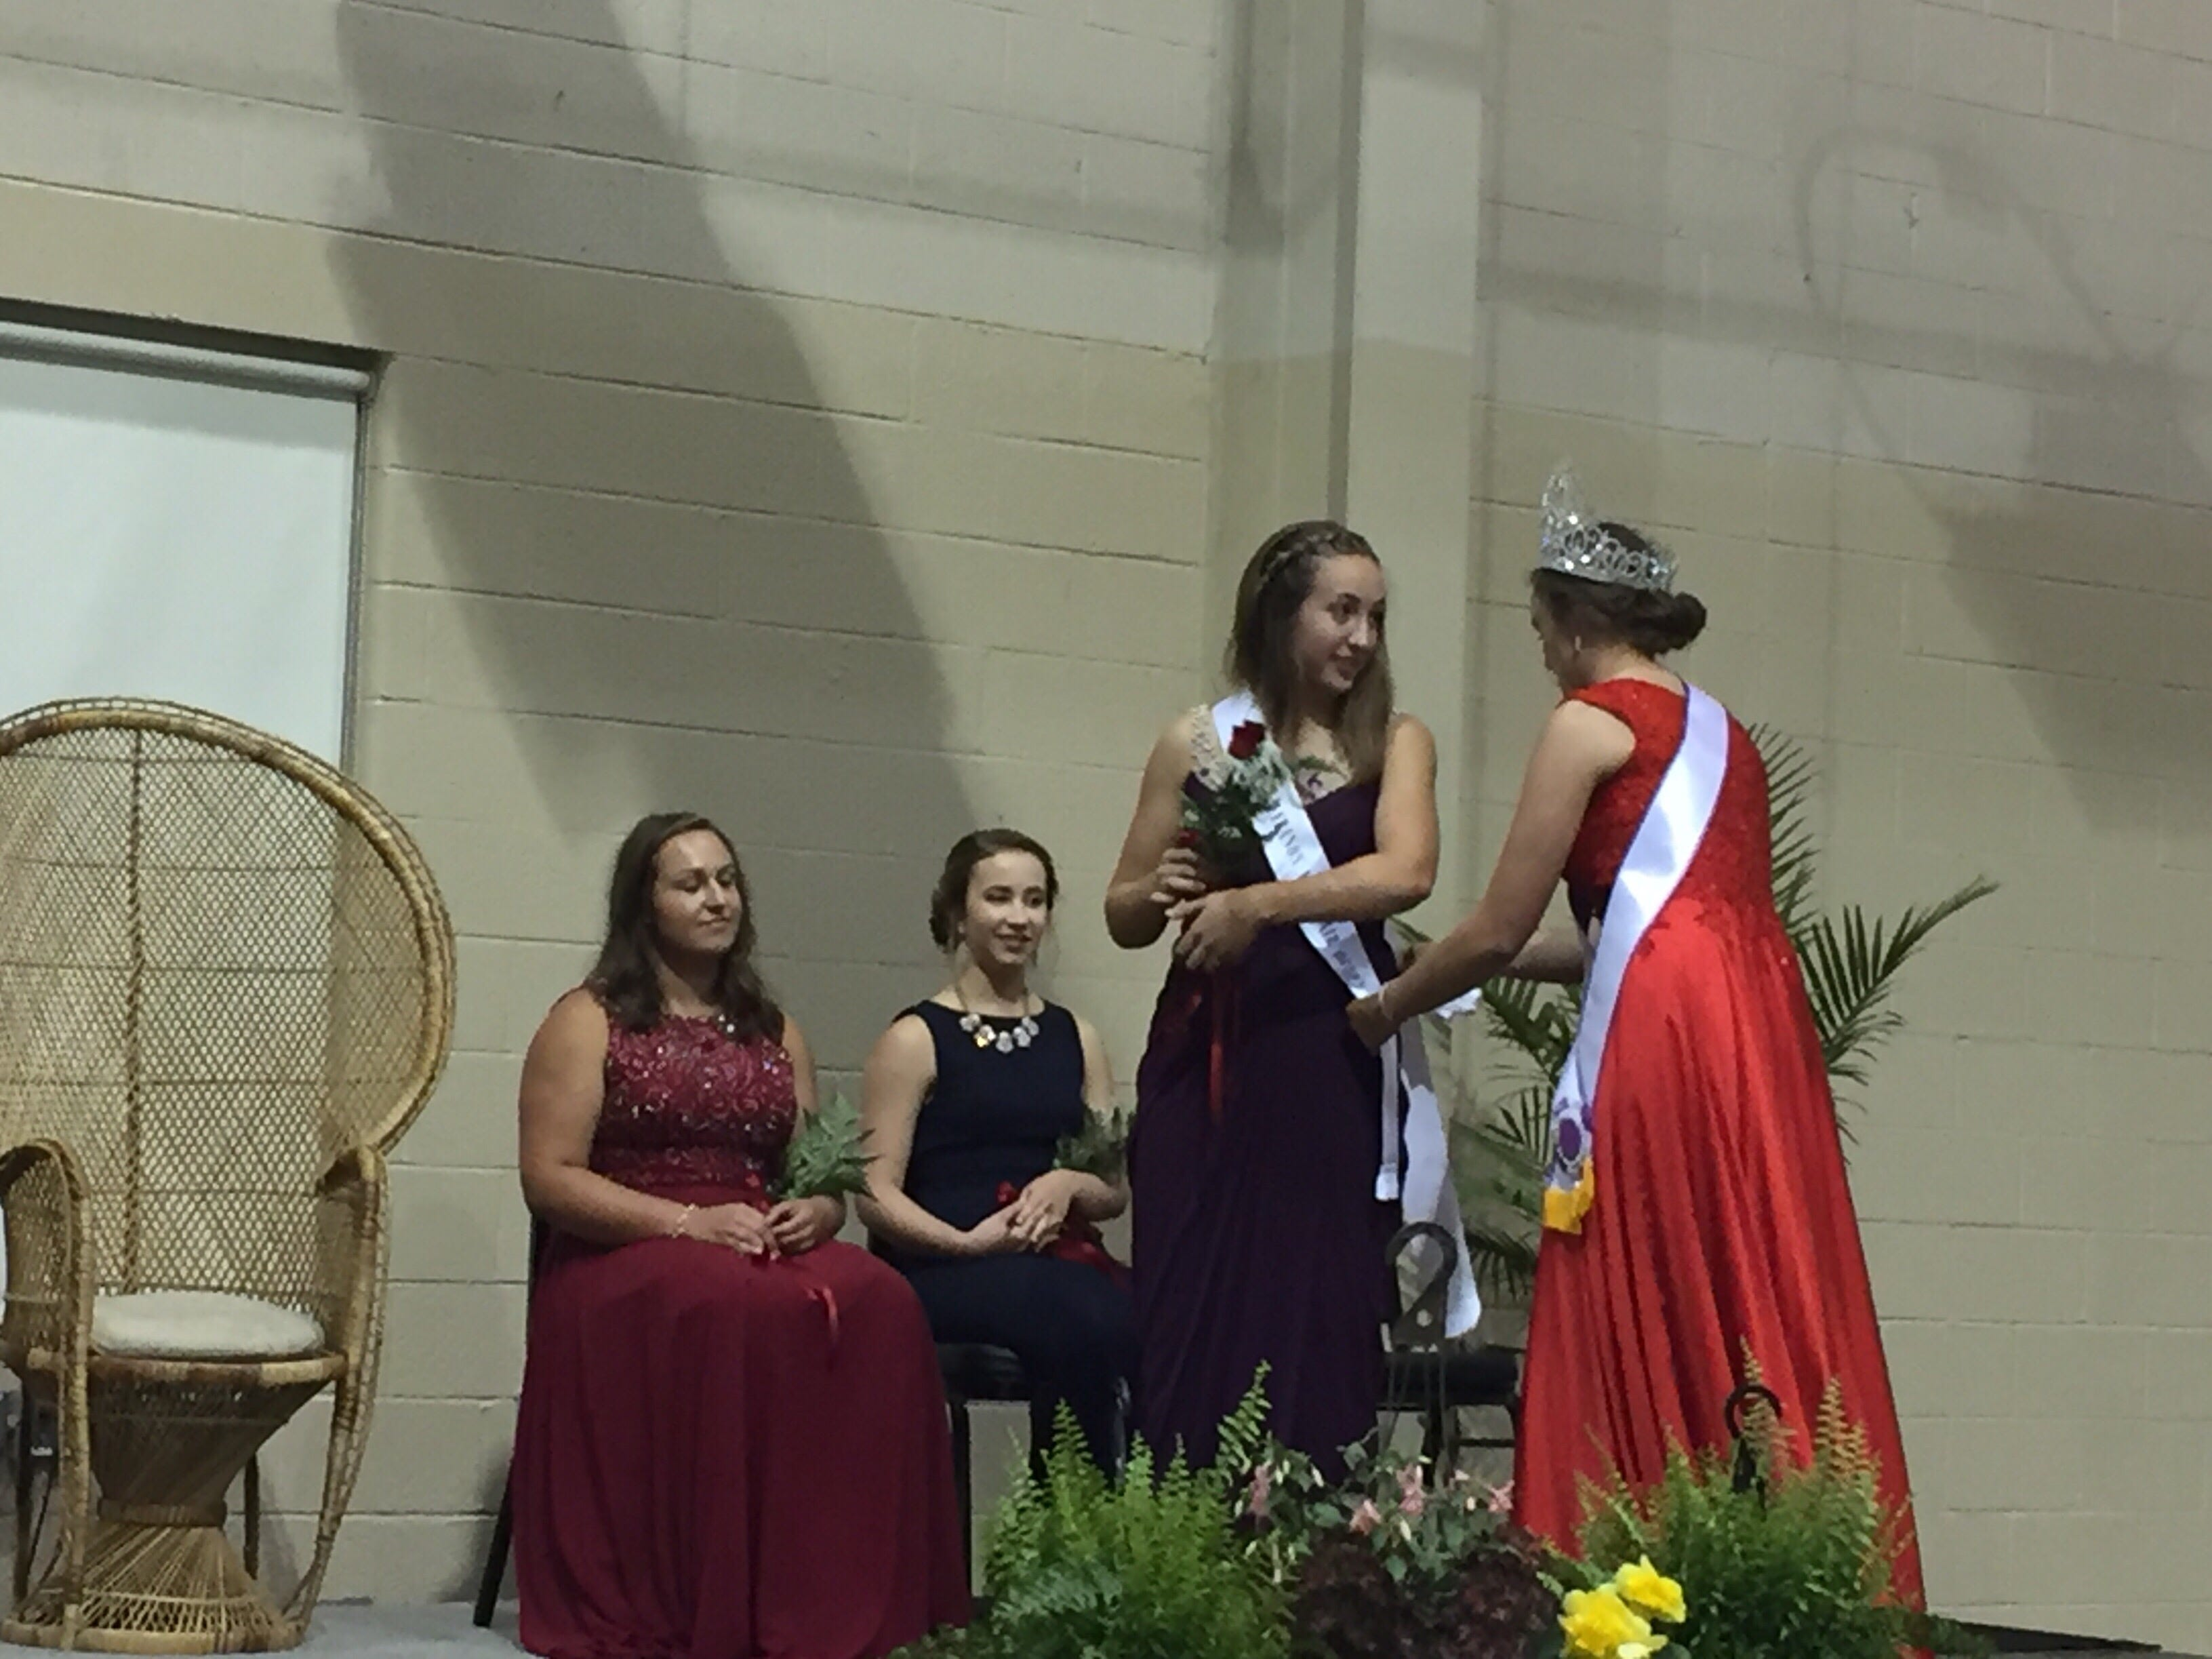 2017 Lebanon Fair Queen Liz Voight (right) crowns the 2018 alternate, Harper Sellers.